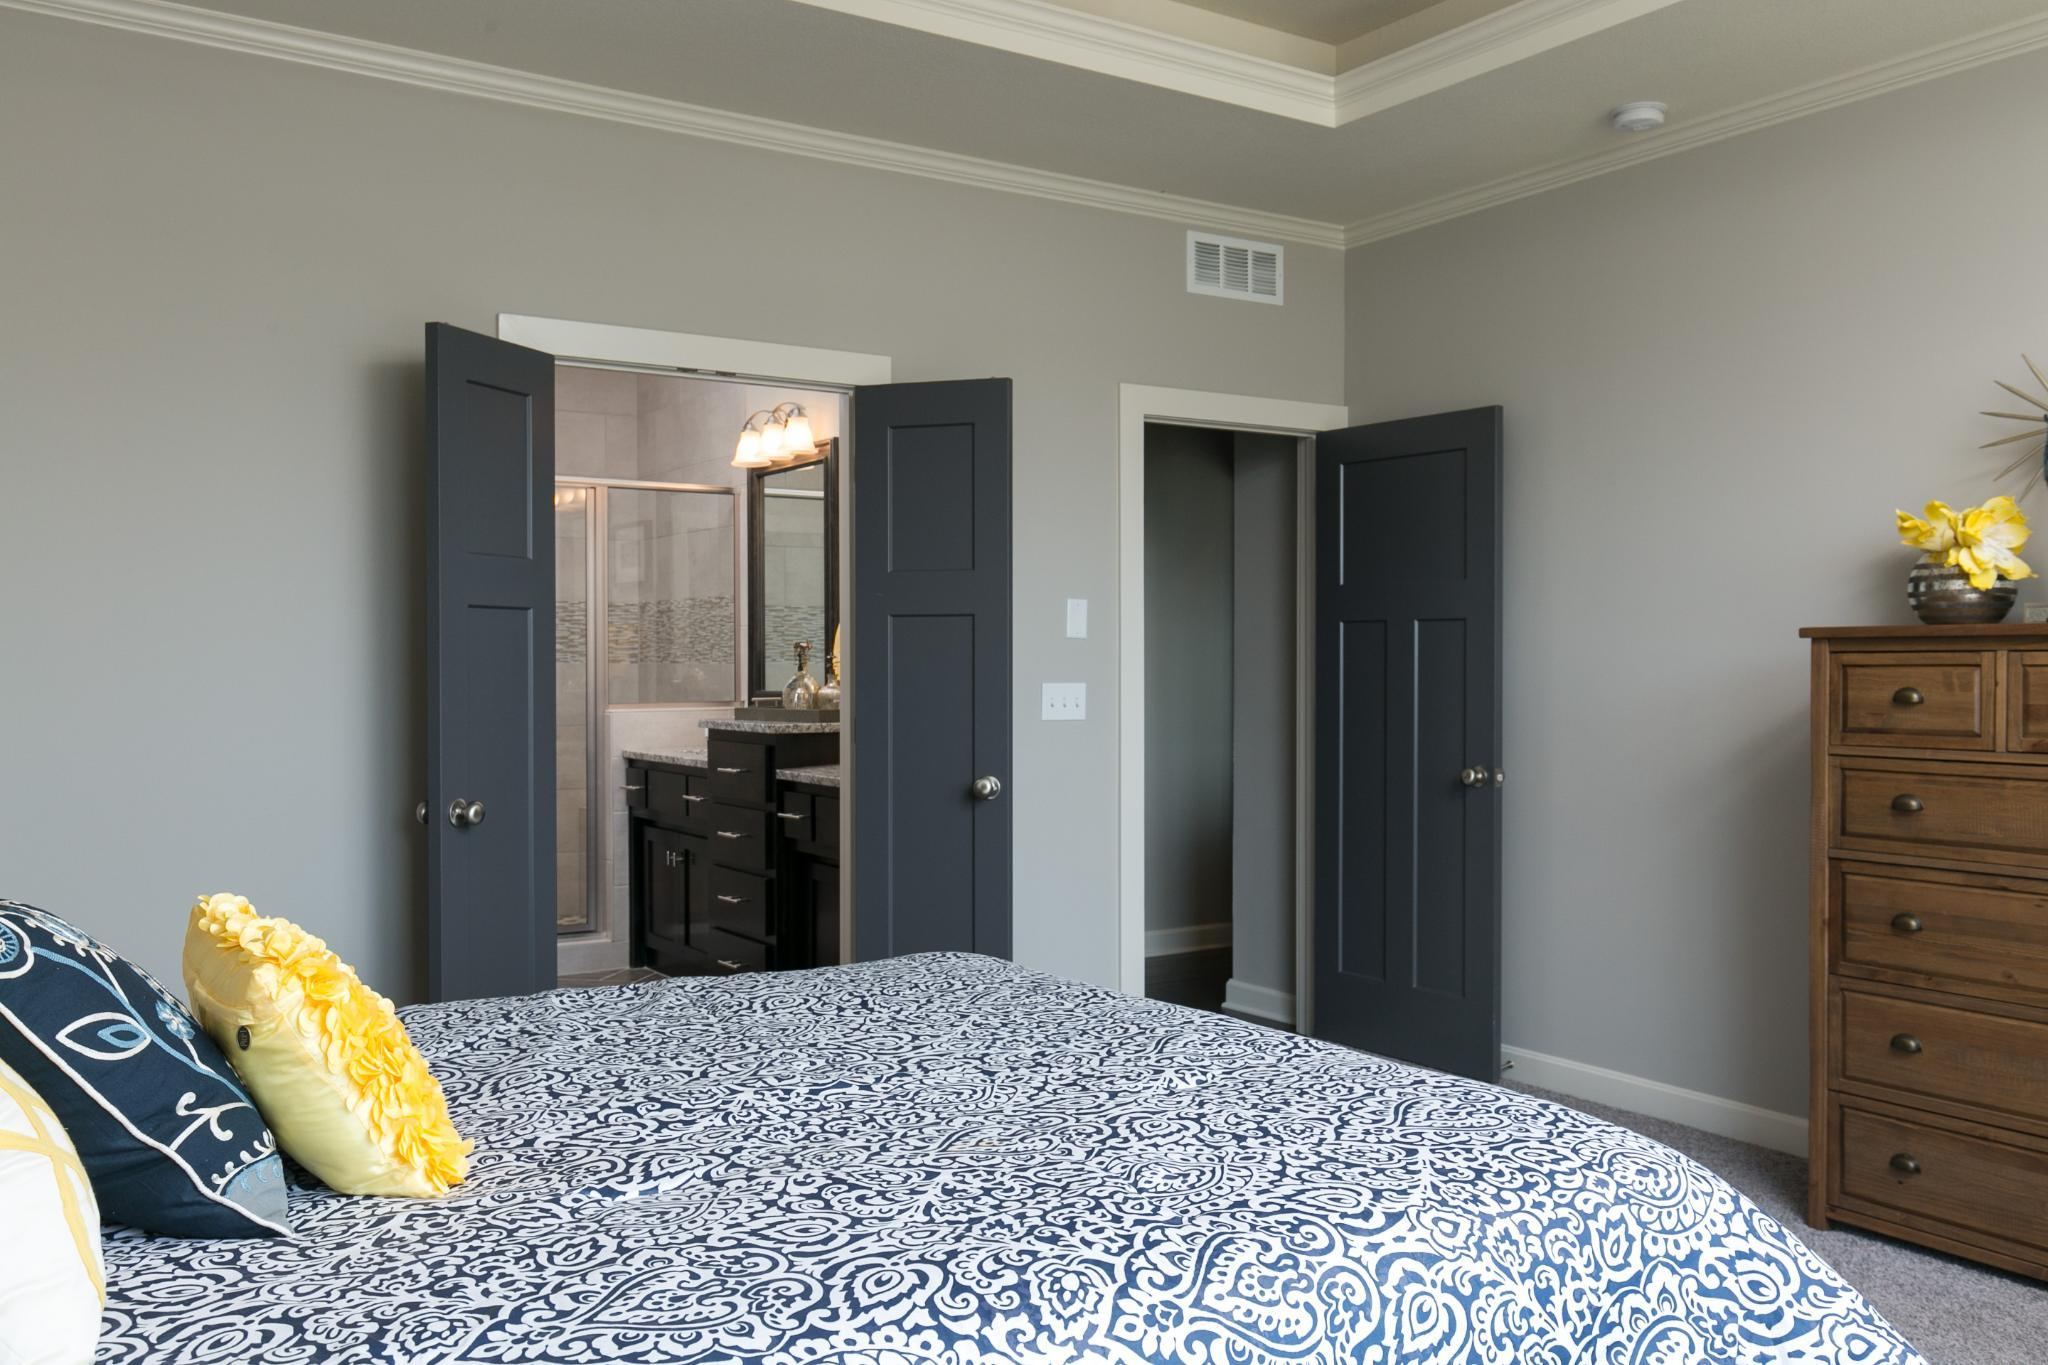 Bedroom featured in the Meadowbrook By Summit Homes in Kansas City, MO